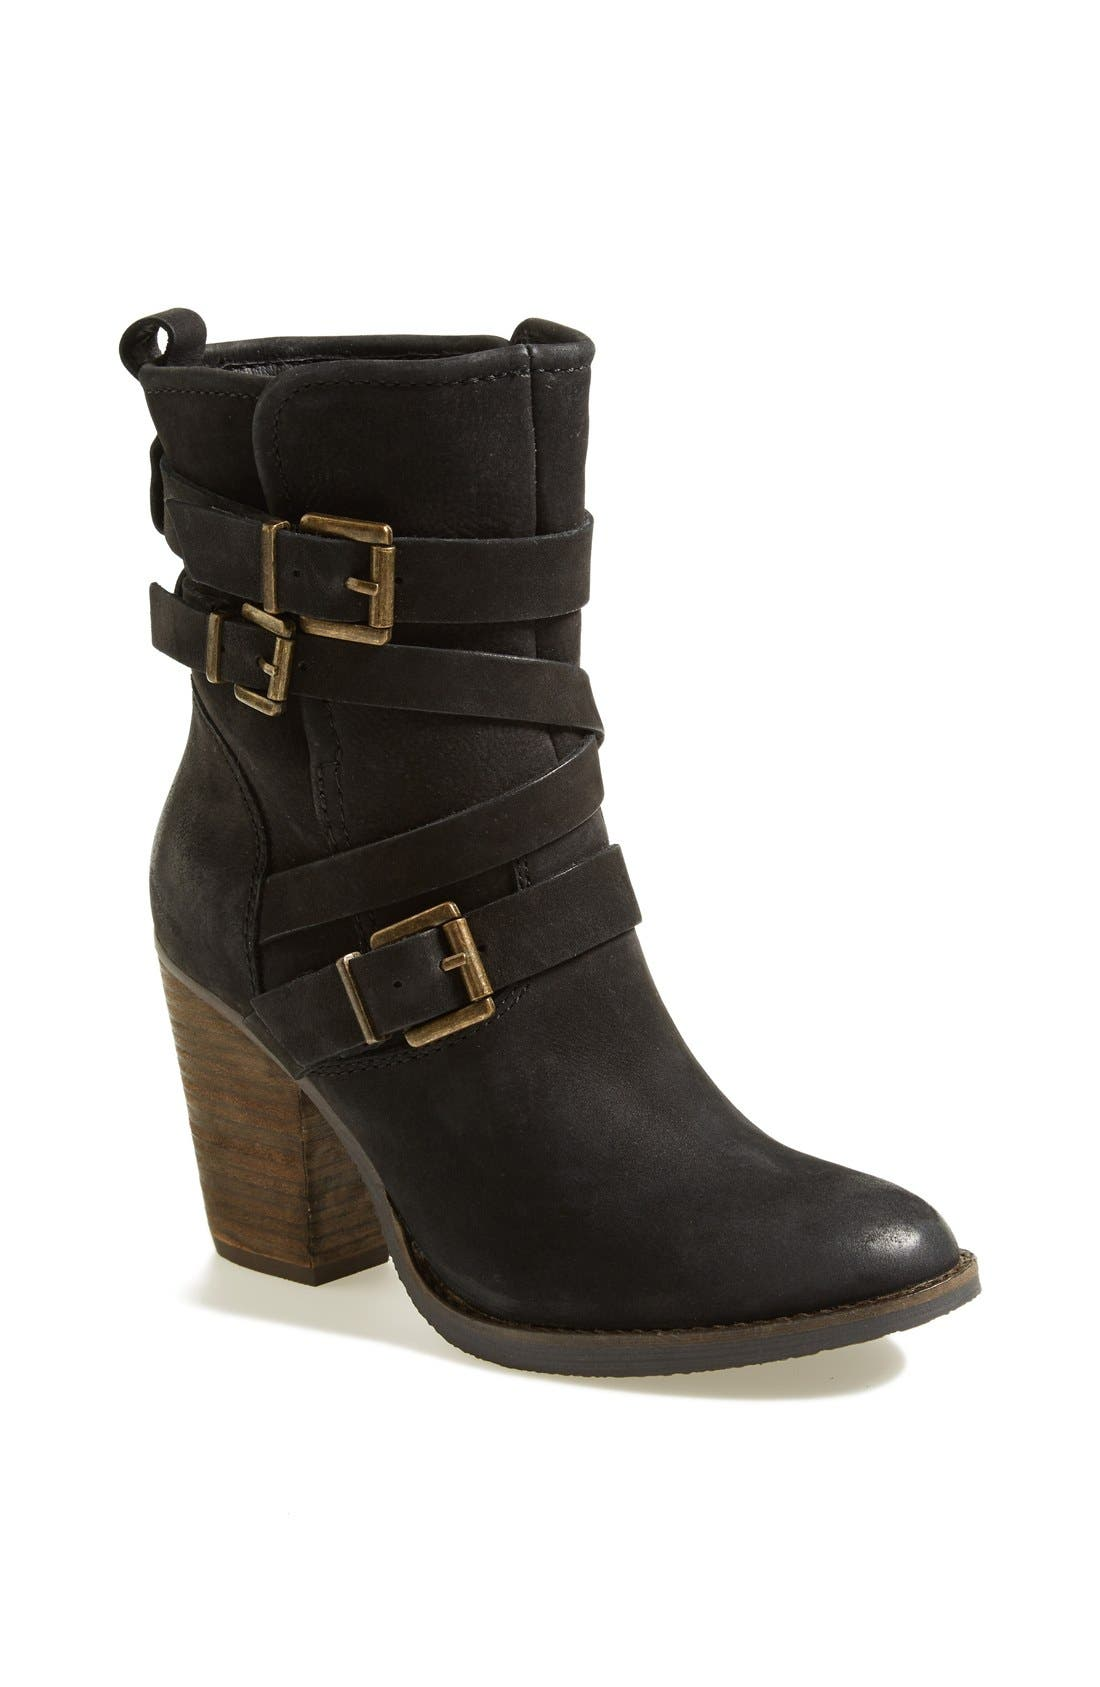 Main Image - Steve Madden 'Yale' Belted Boot (Women)